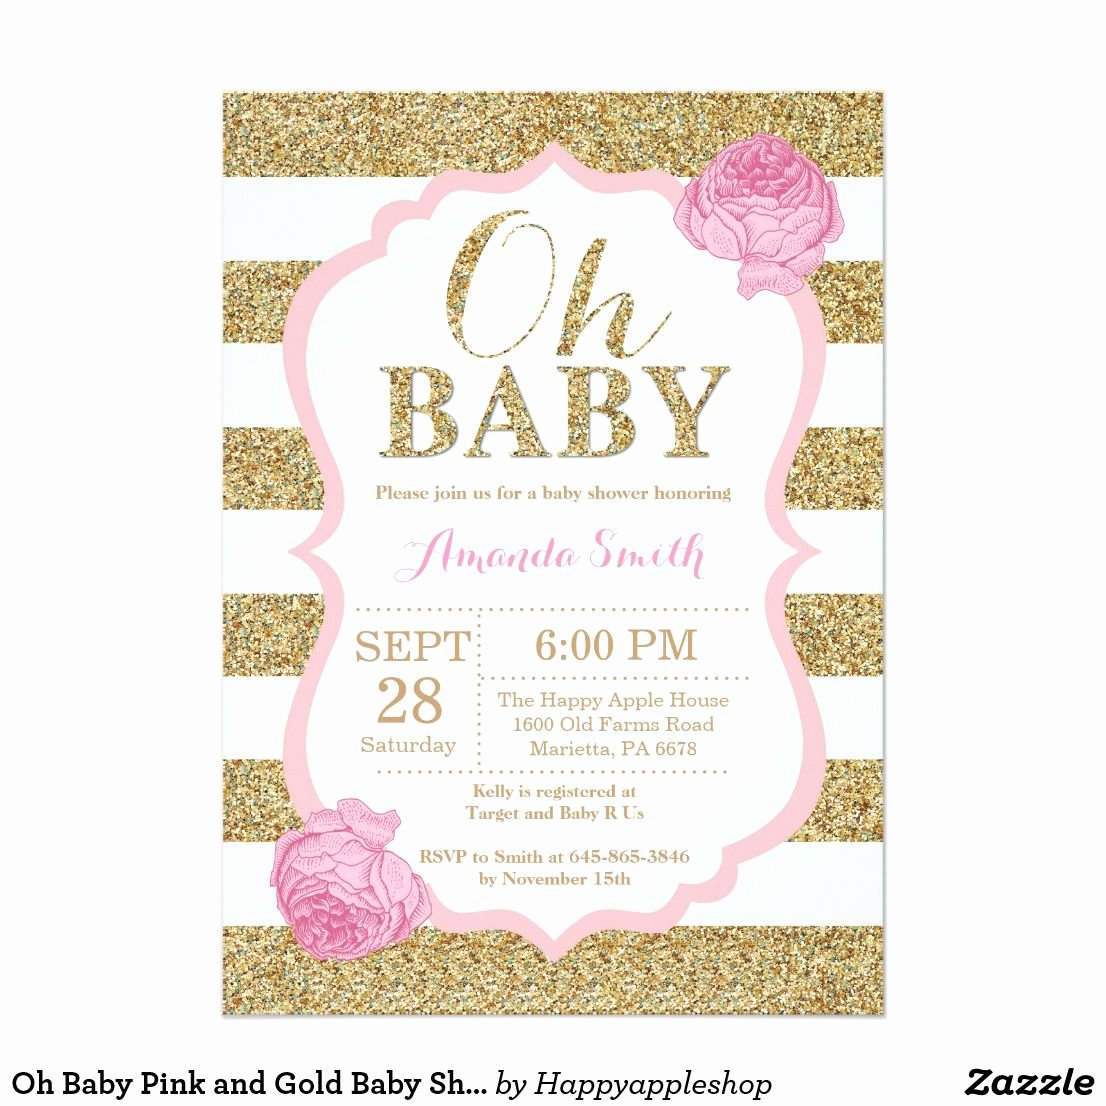 Pink and Gold Invitations Templates Awesome Oh Baby Pink and Gold Baby Shower Invitation Zazzle Babies and Baby Showers